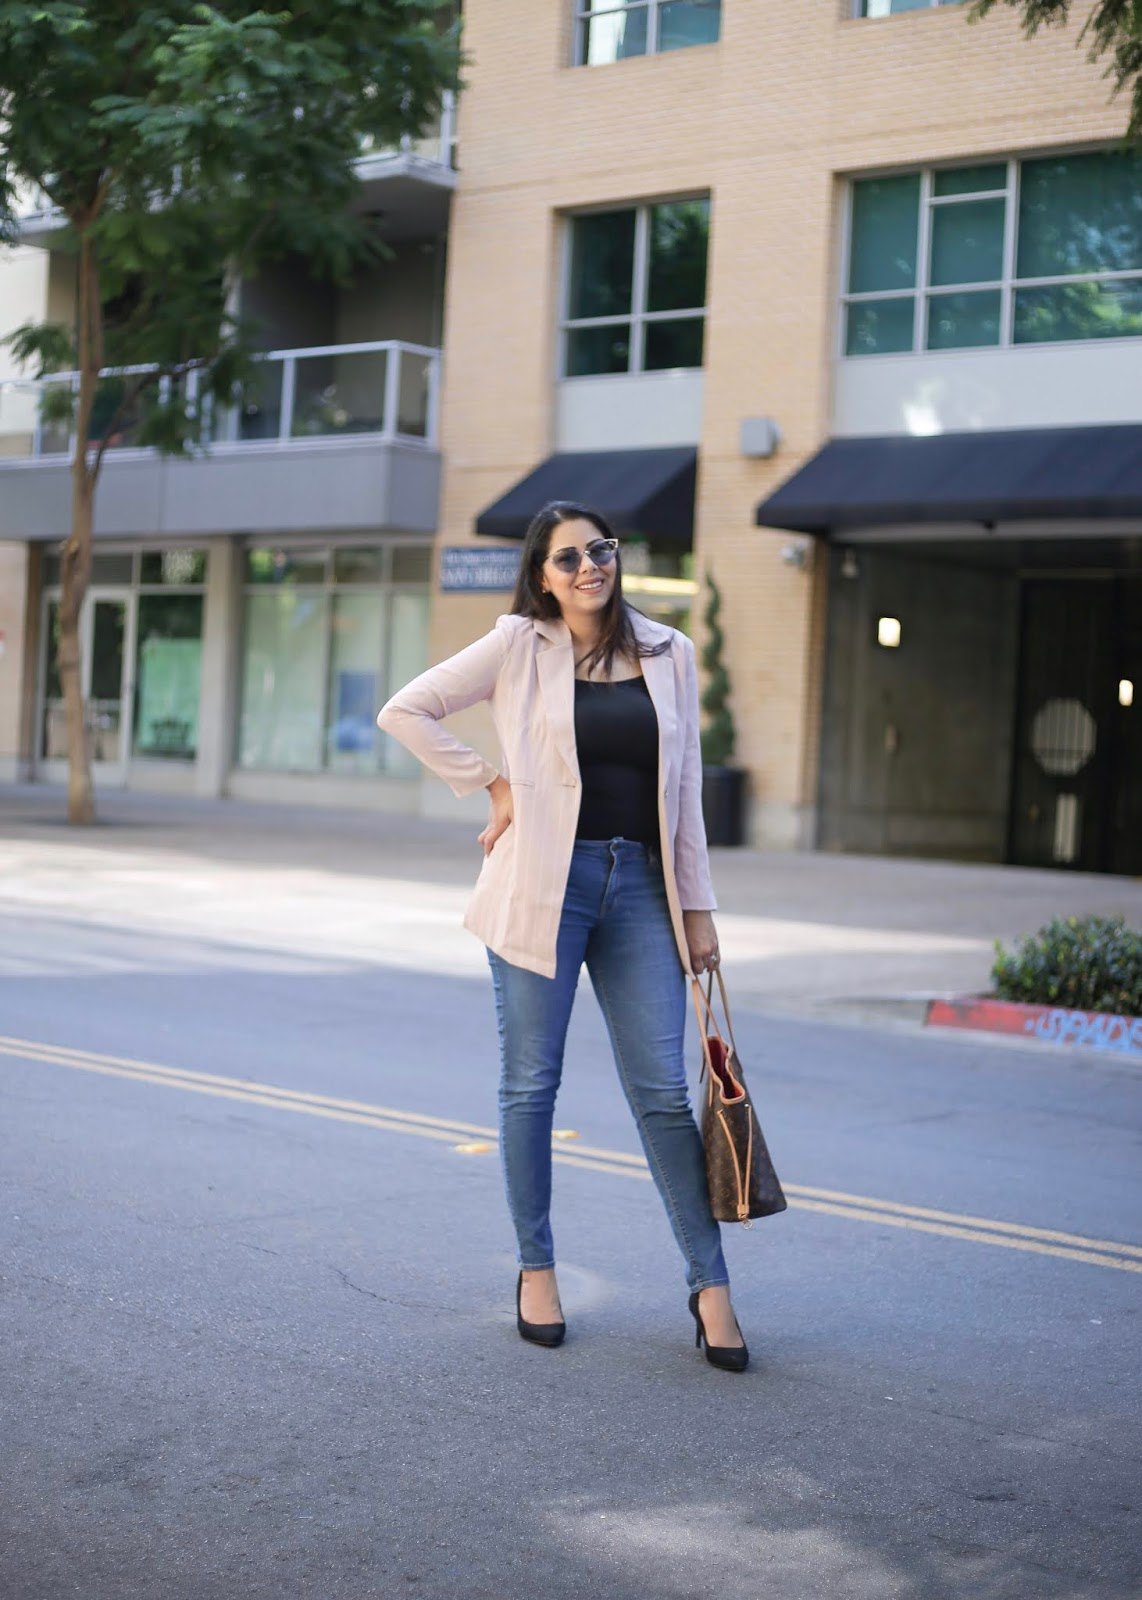 business casual outfit for women, working professional blogger, San Diego based fashion blogger